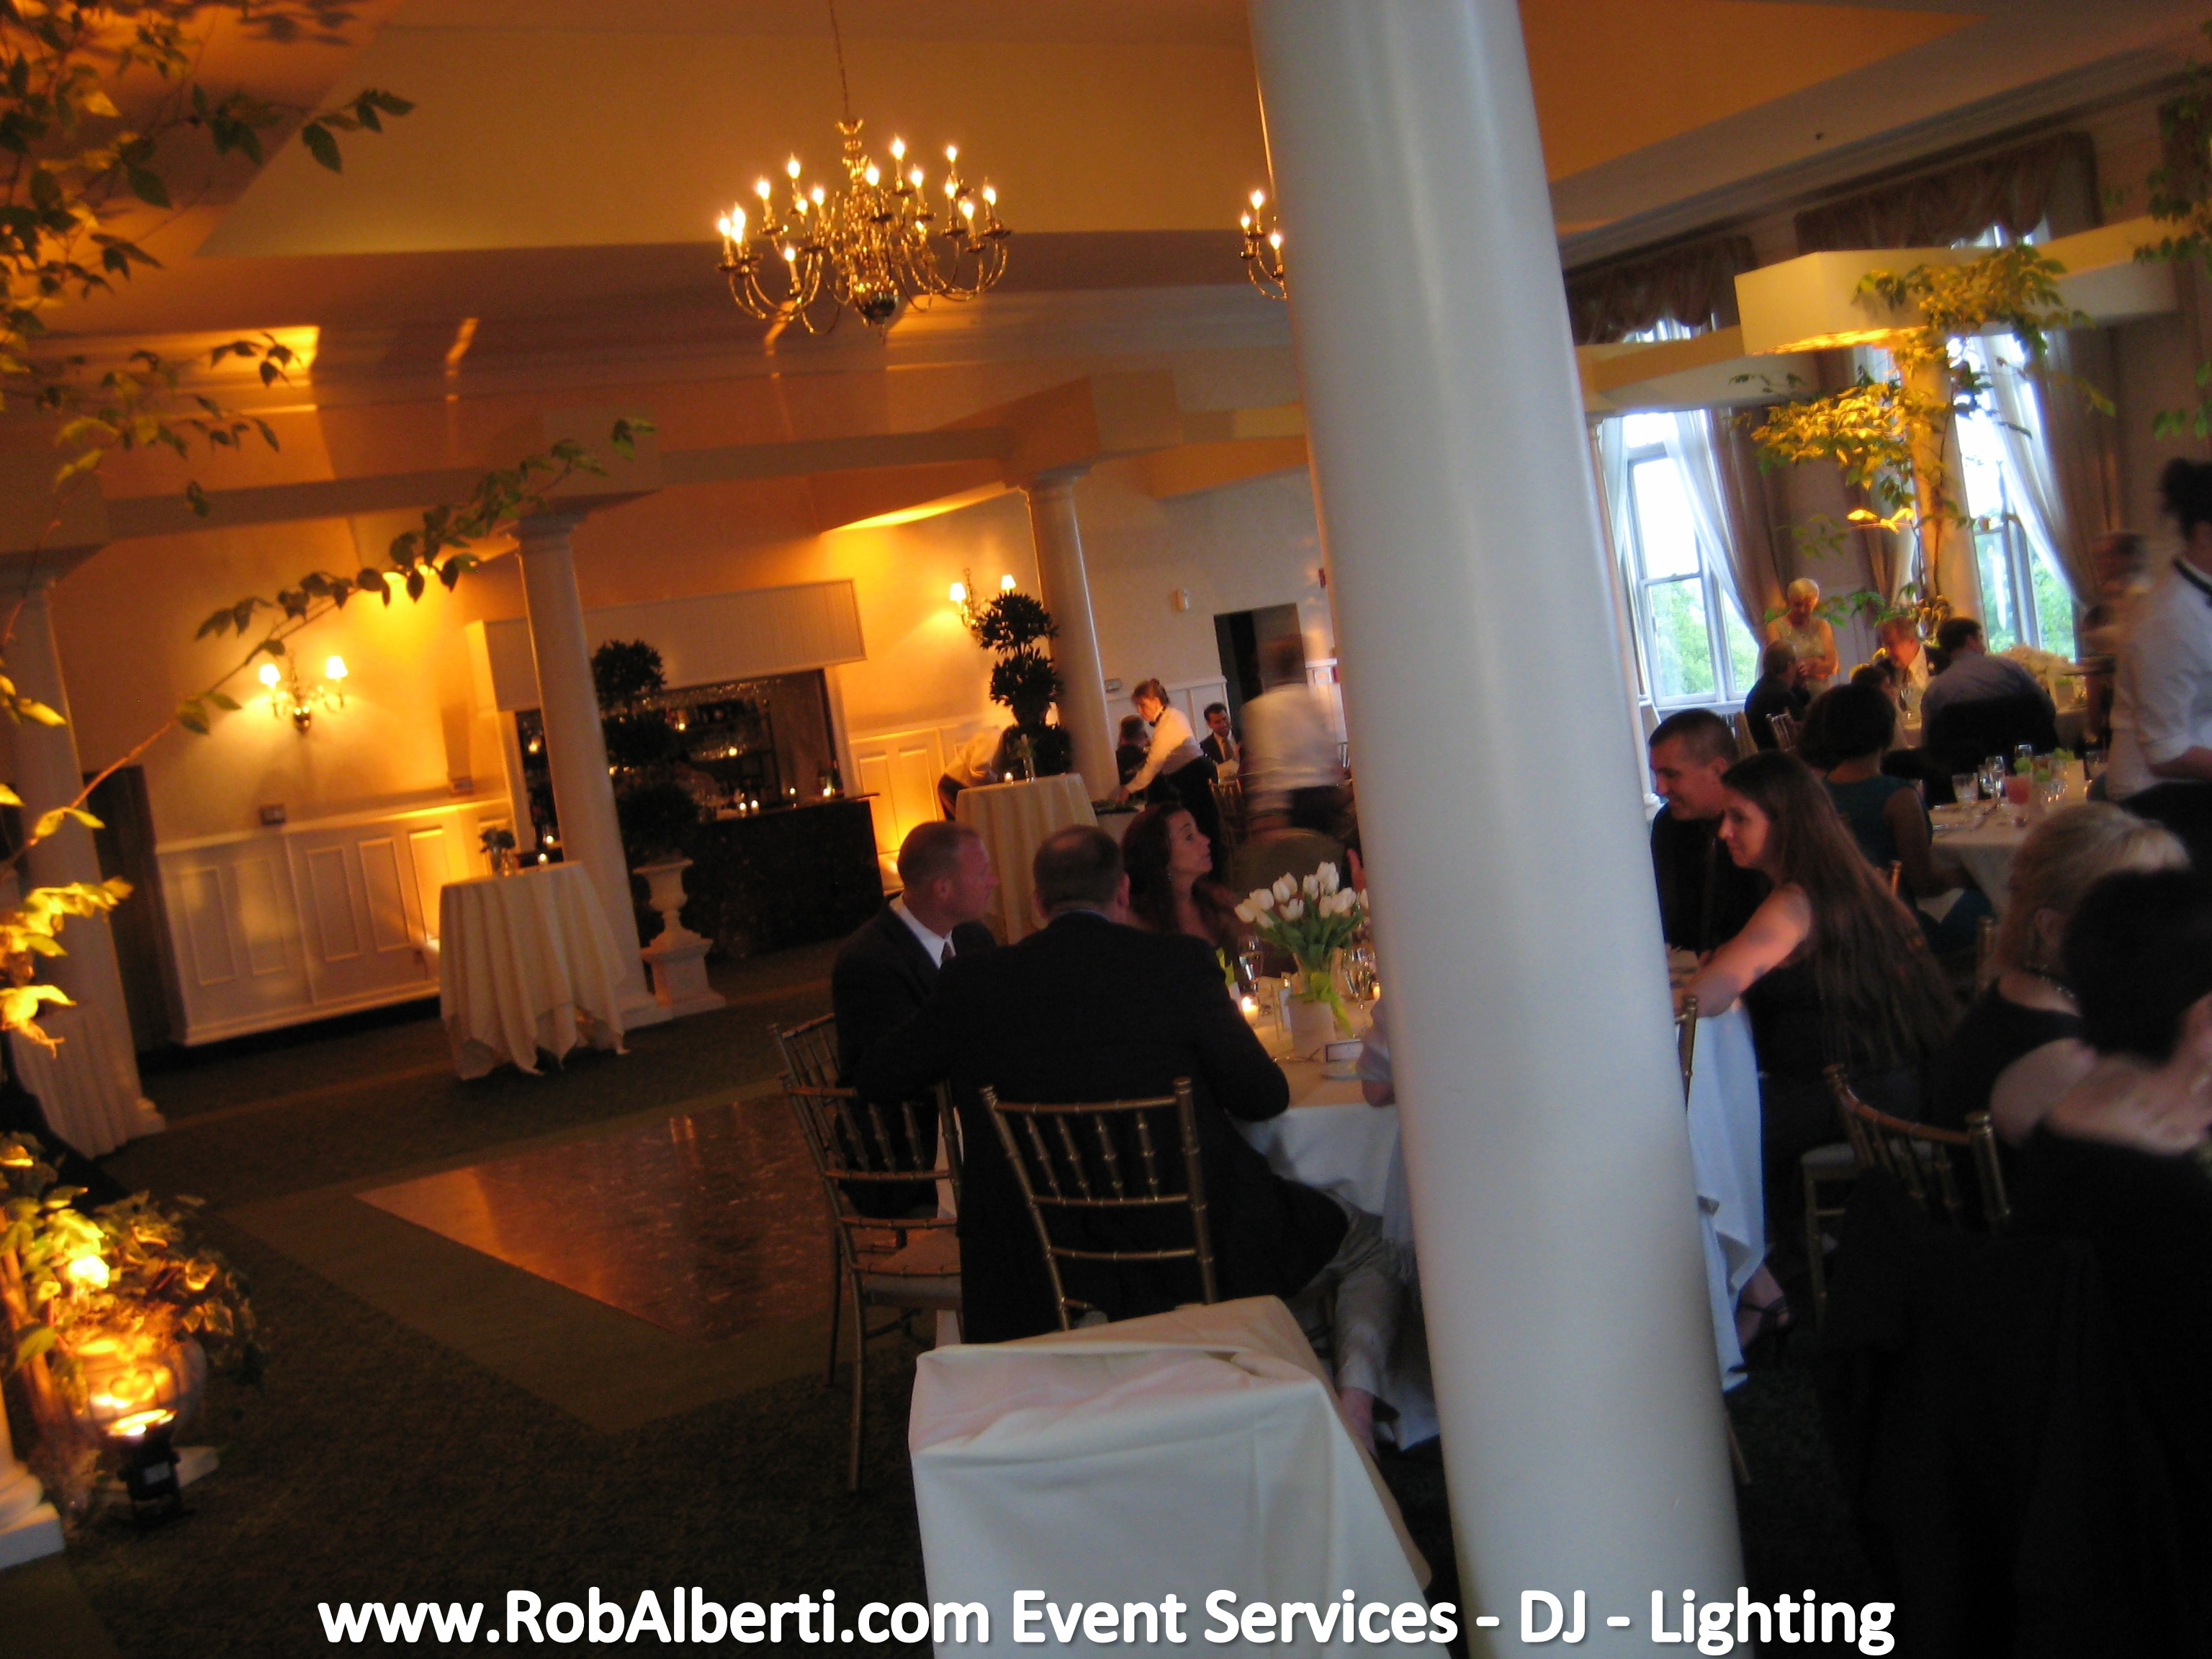 Wedding event lighting can